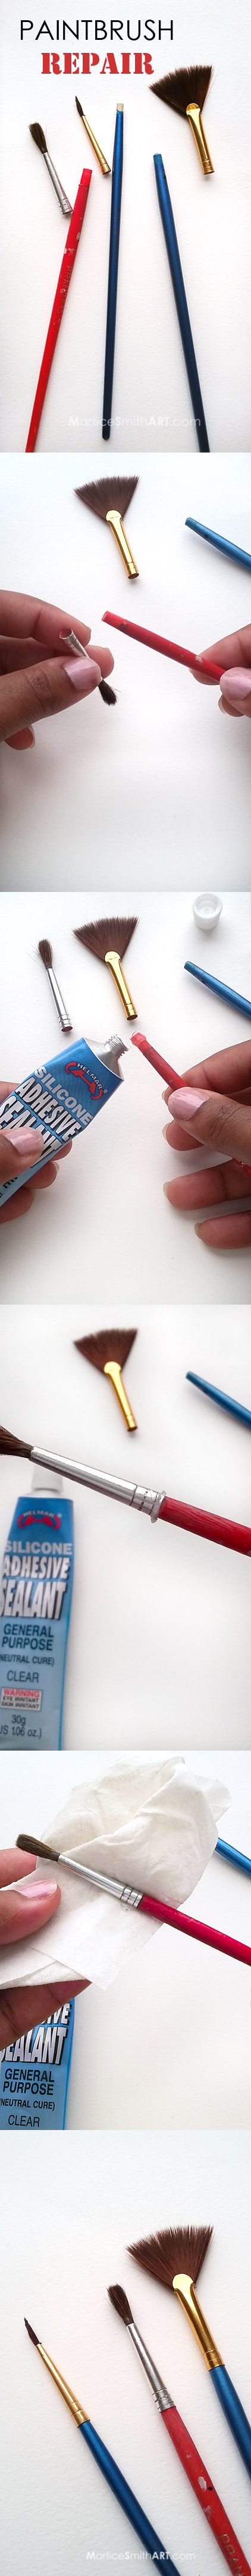 MarticeSmithART-PaintbrushRepair-tutorial